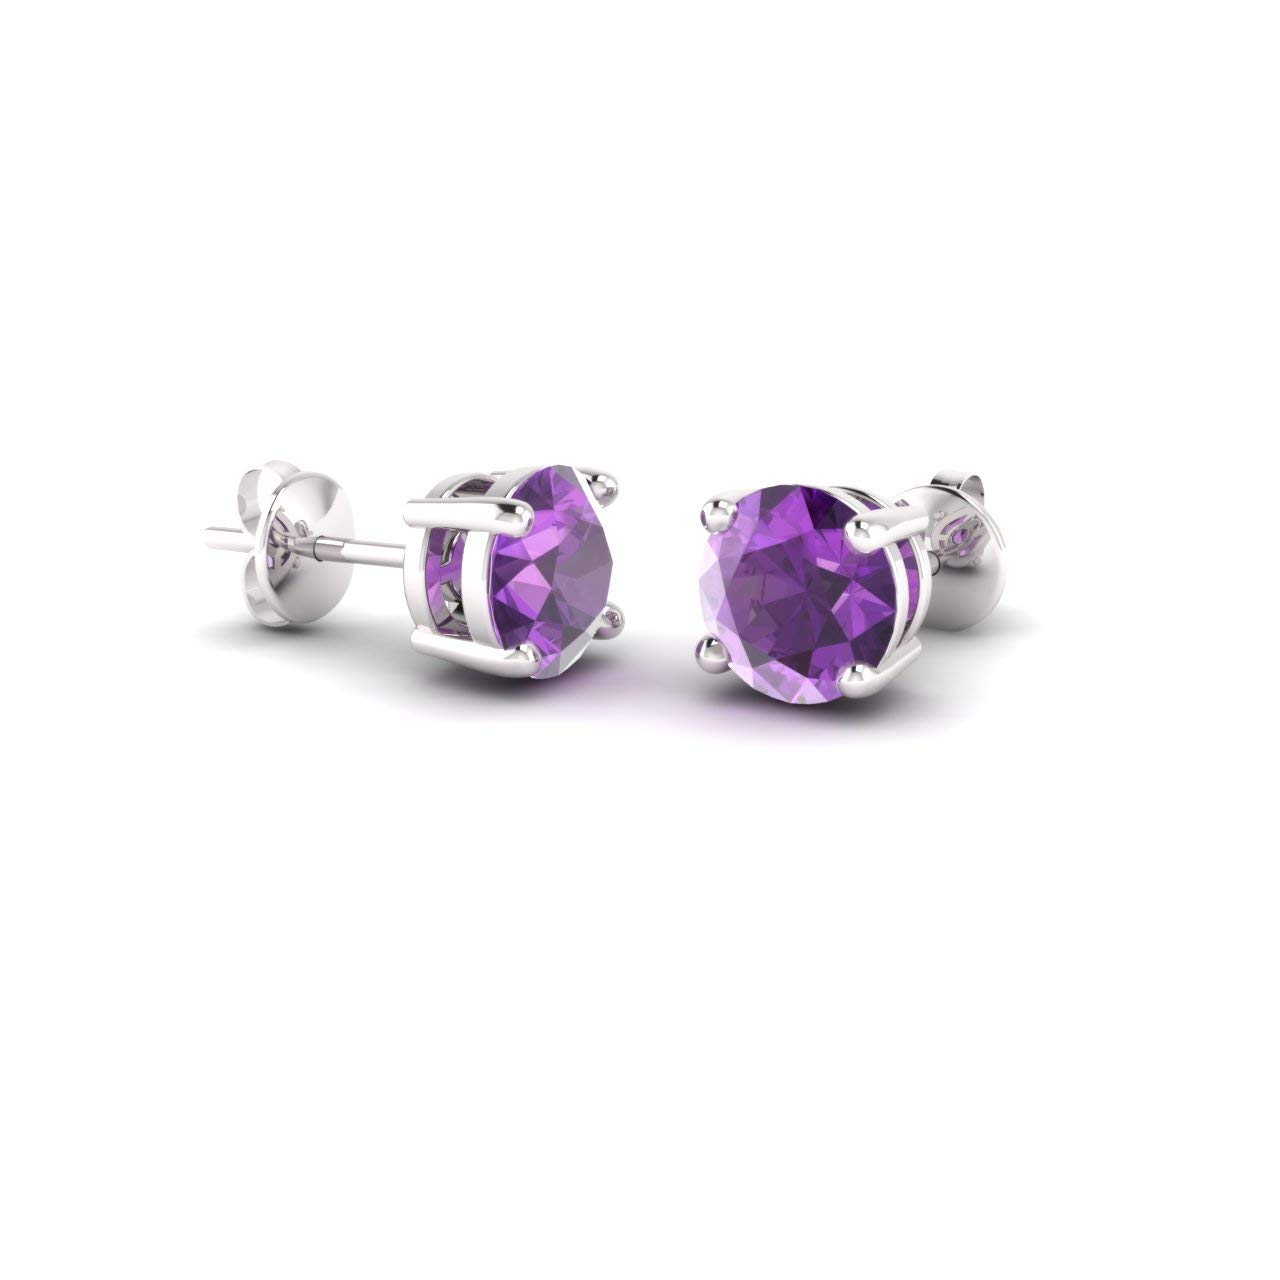 Diamondere Natural and Certified Gemstone Solitaire Stud Earrings in 14K White Gold | 0.85 Carat Earrings for Women